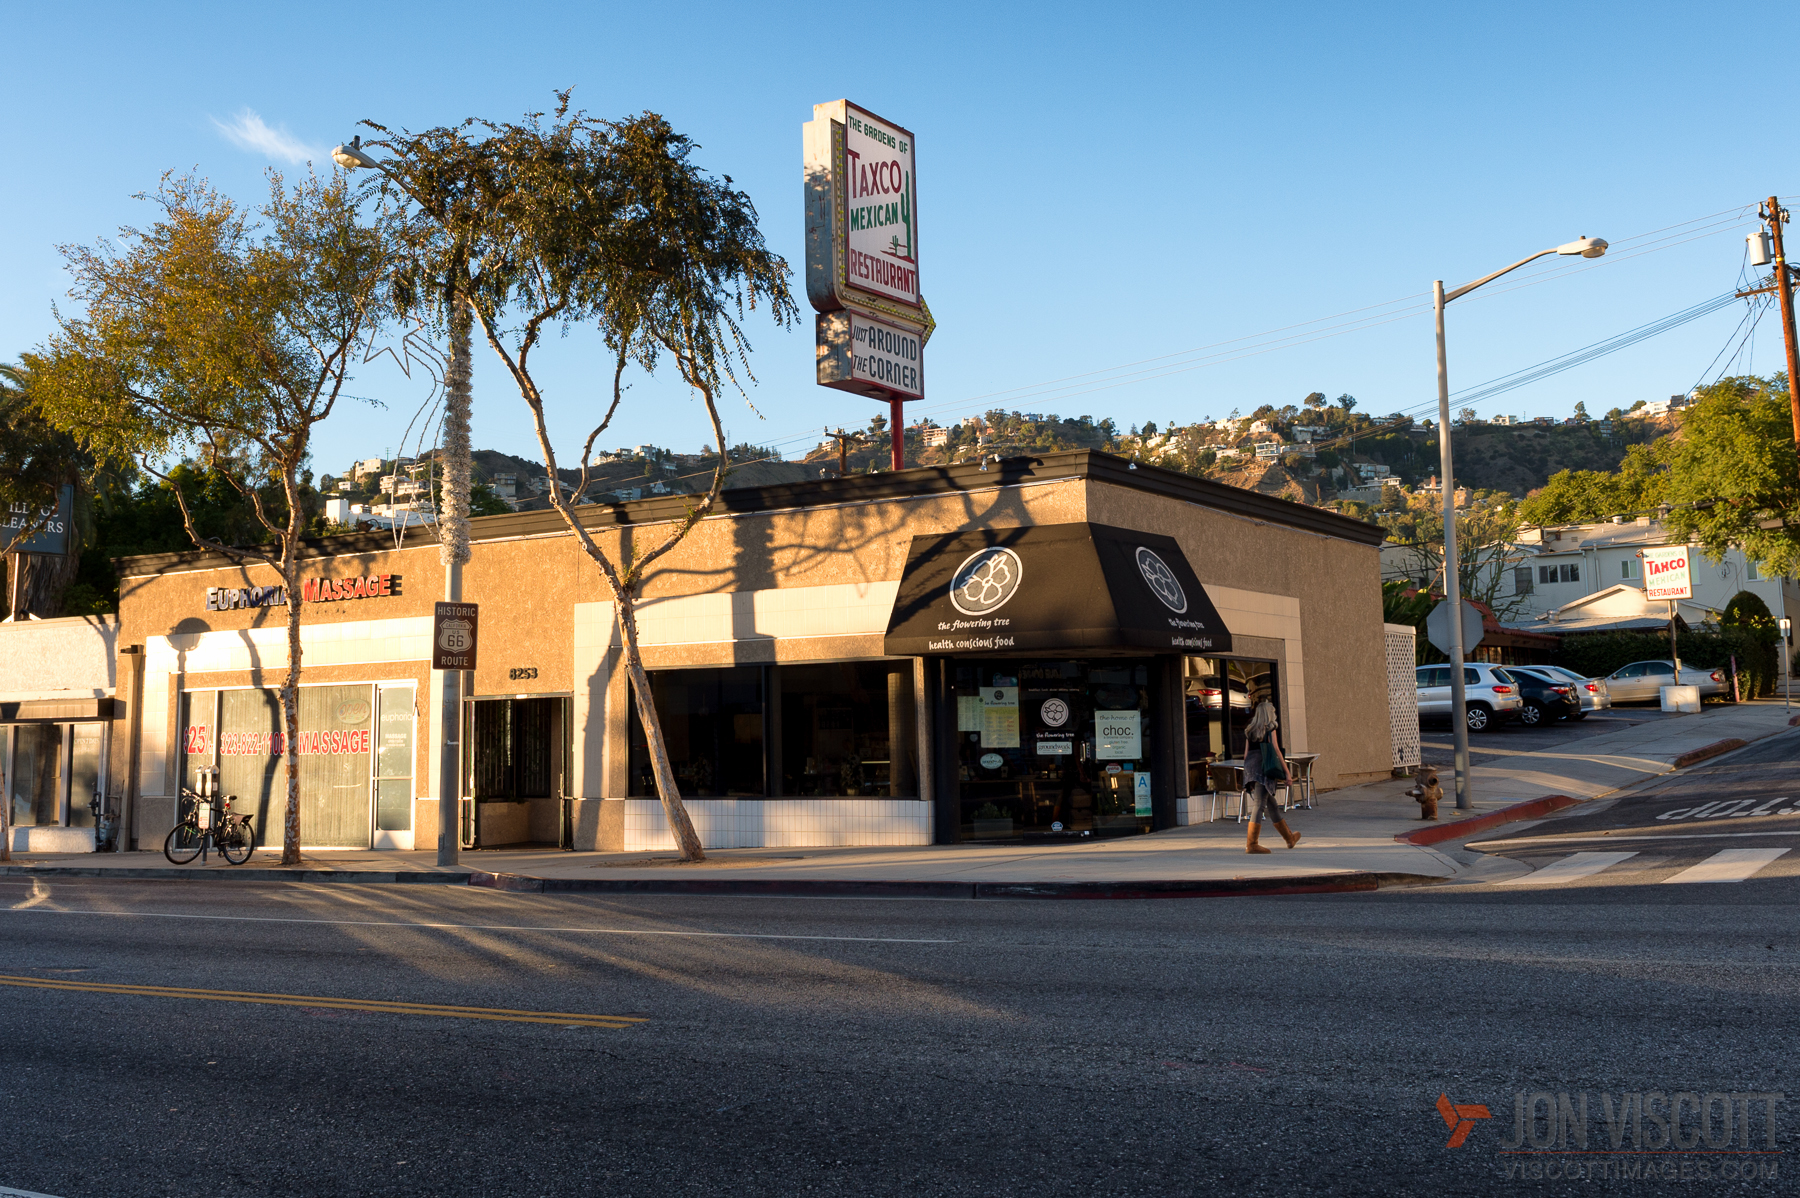 ... now the decidedly more healthy Flowering Tree vegetarian restaurant and a massage parlor (Photo by Jon Viscott)